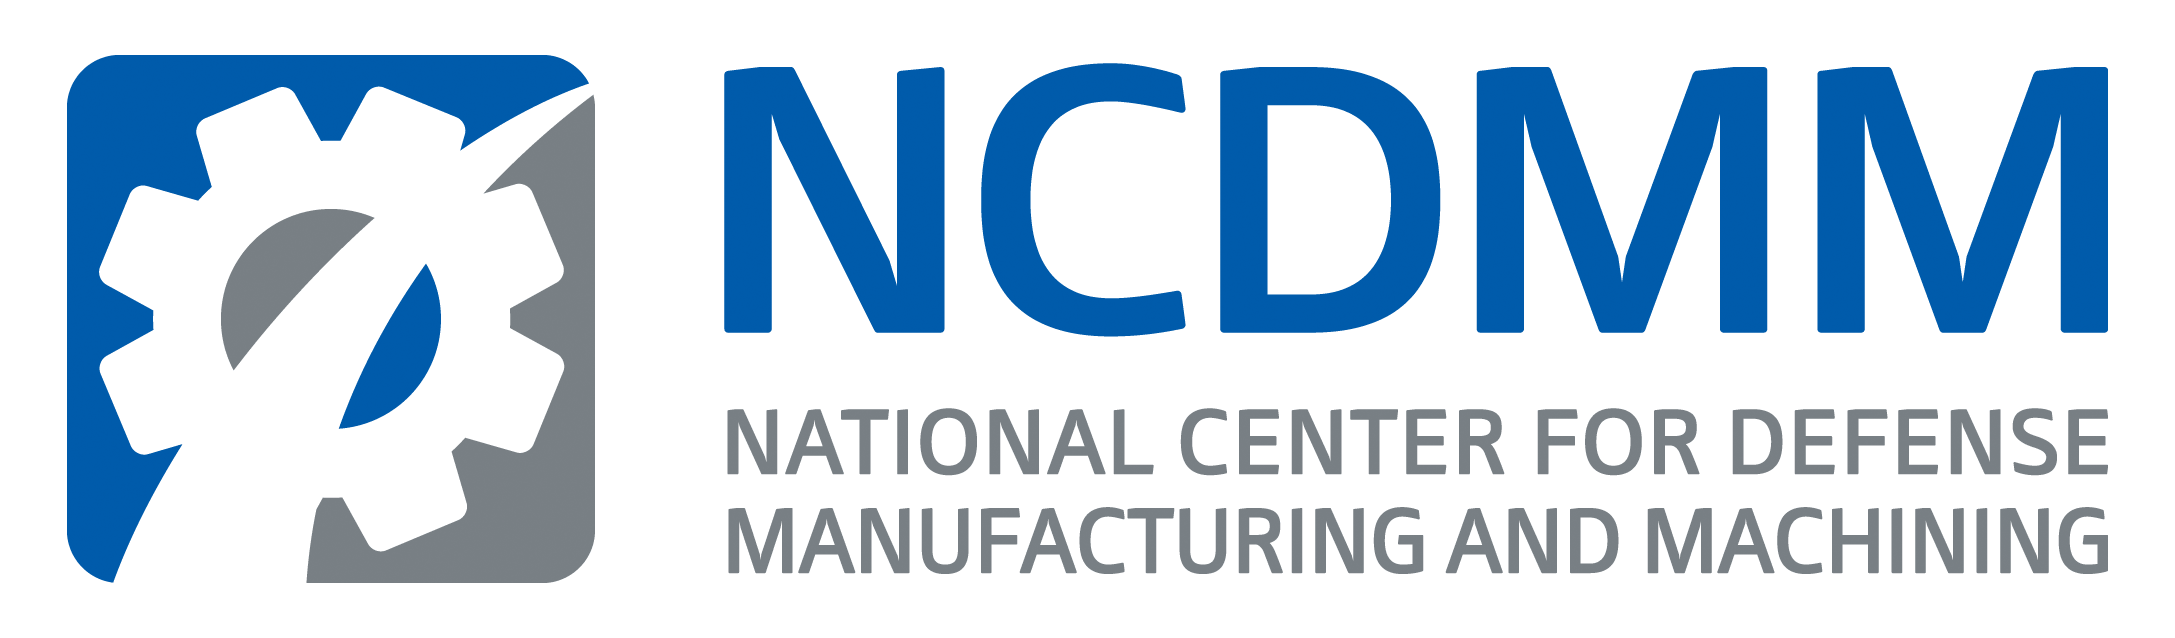 NCDMM delivers innovative and collaborative manufacturing solutions to enhance the U.S.' workforce and economic competitiveness.